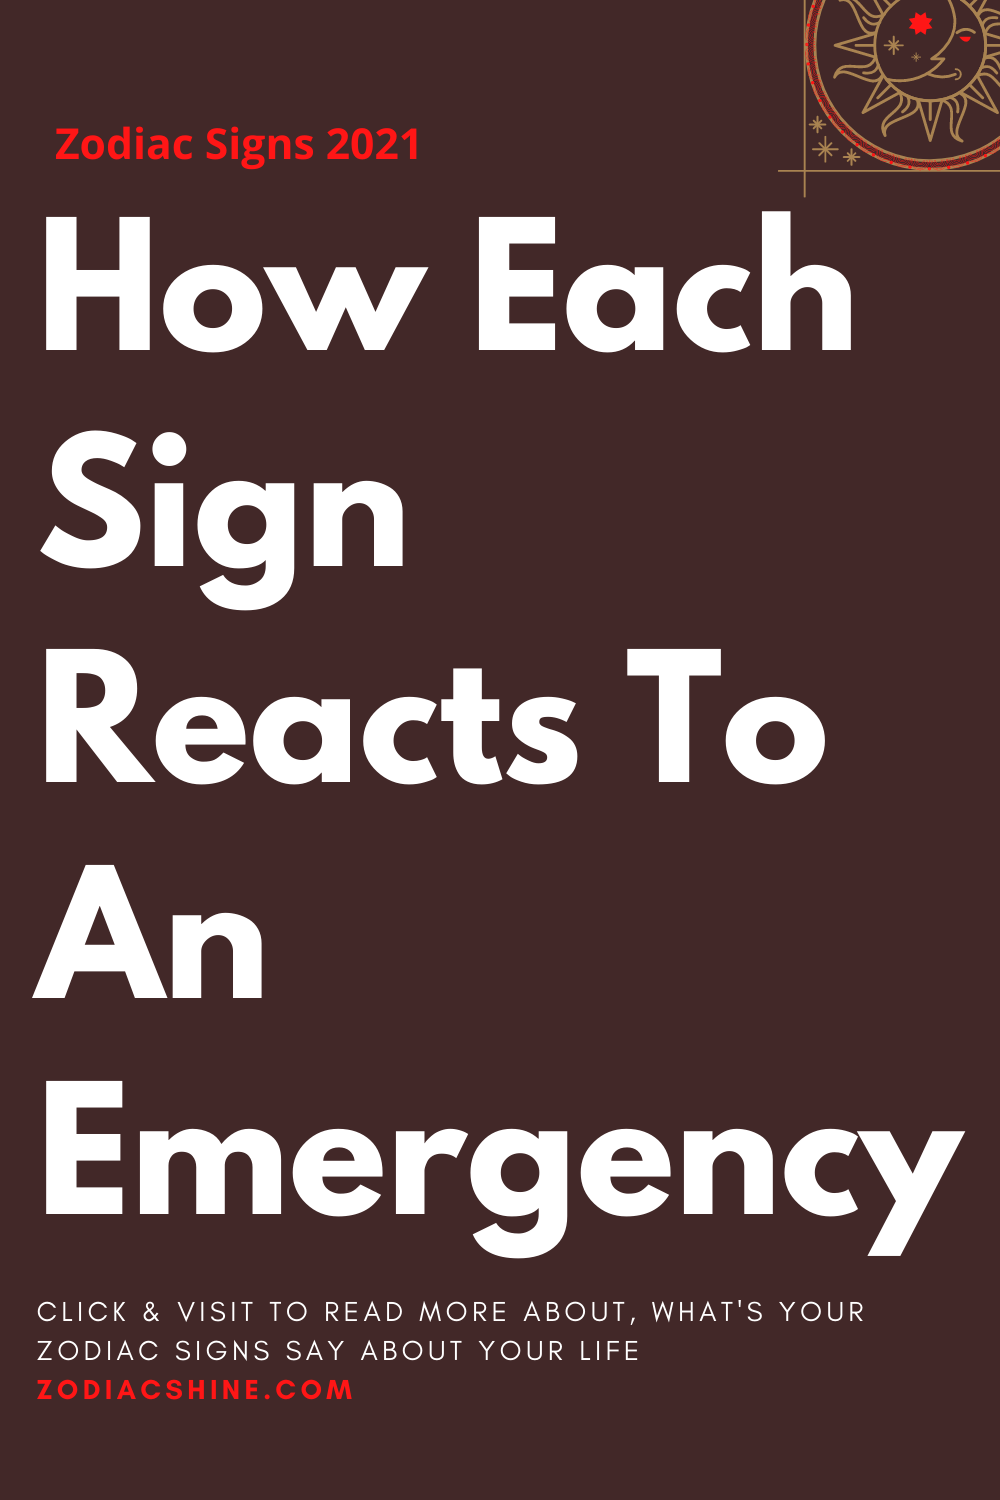 How Each Sign Reacts To An Emergency